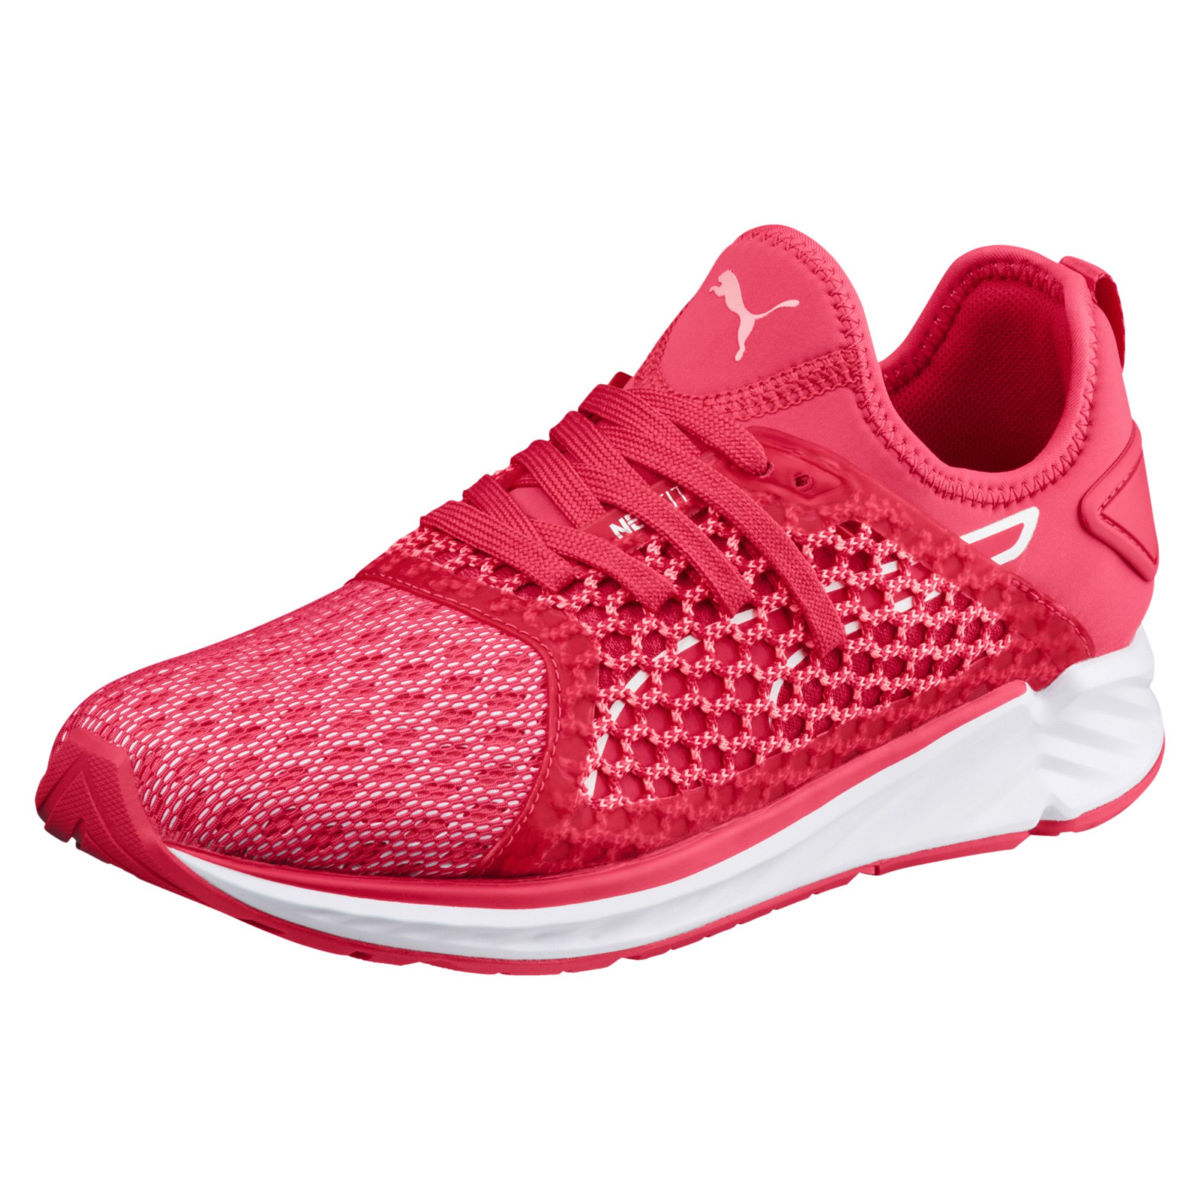 Chaussures Femme Puma Ignite 4 Netfit - UK 6.5 pink-fluopeach